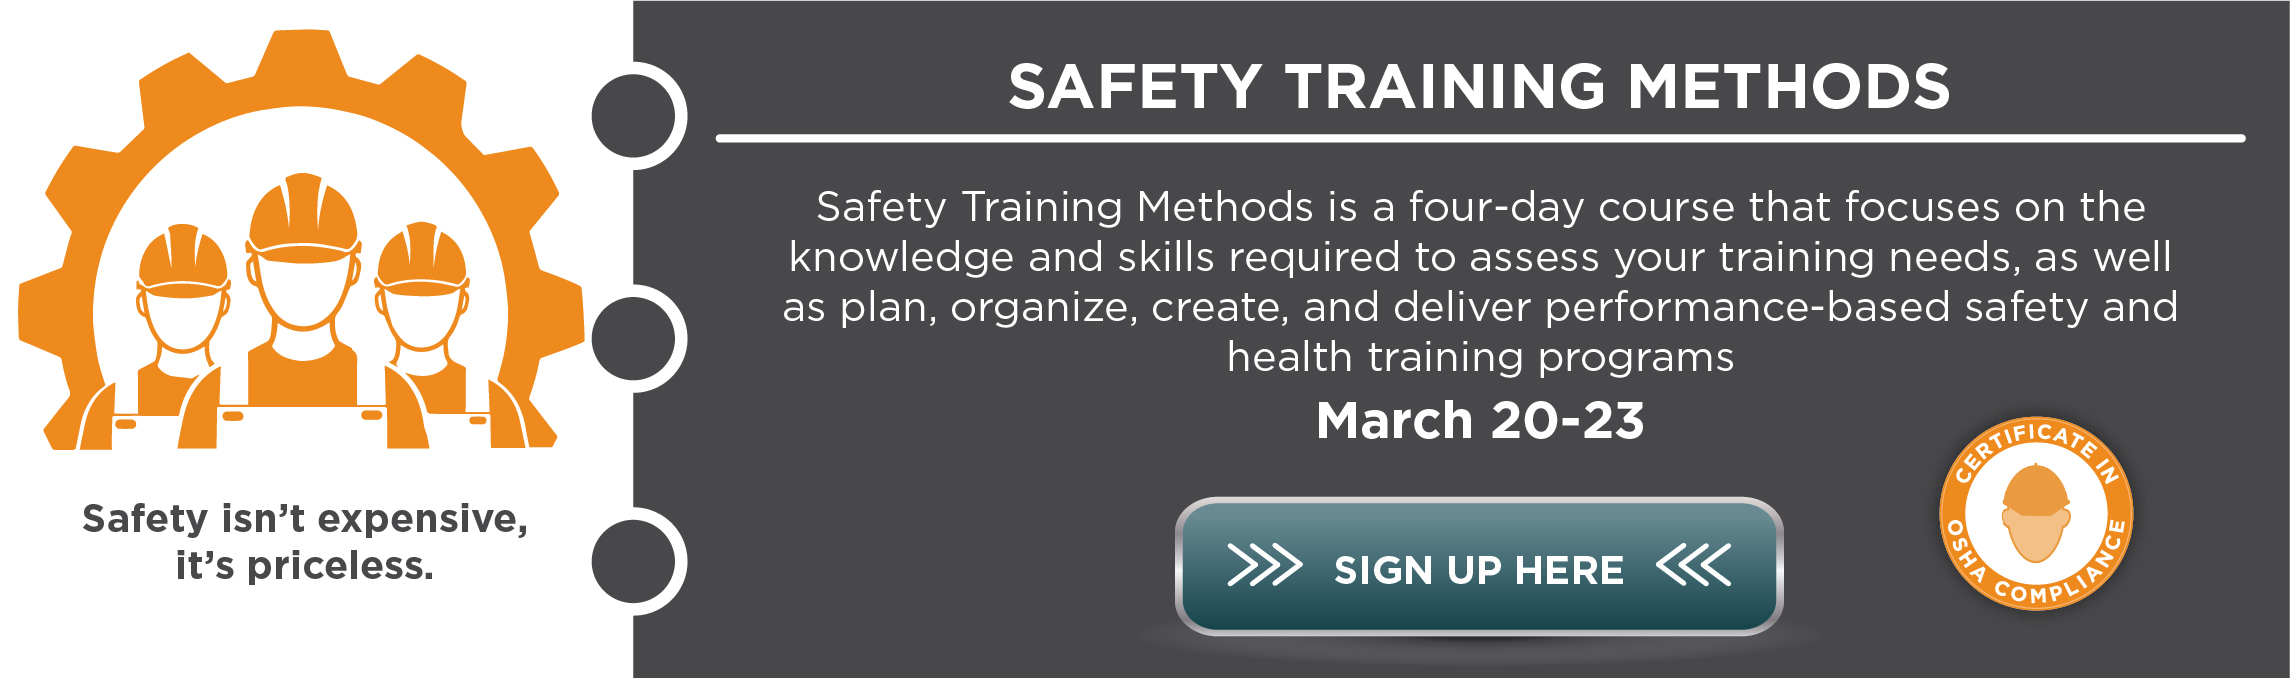 Emergency care safety utah safety council forklift trainer certification course 1betcityfo Gallery